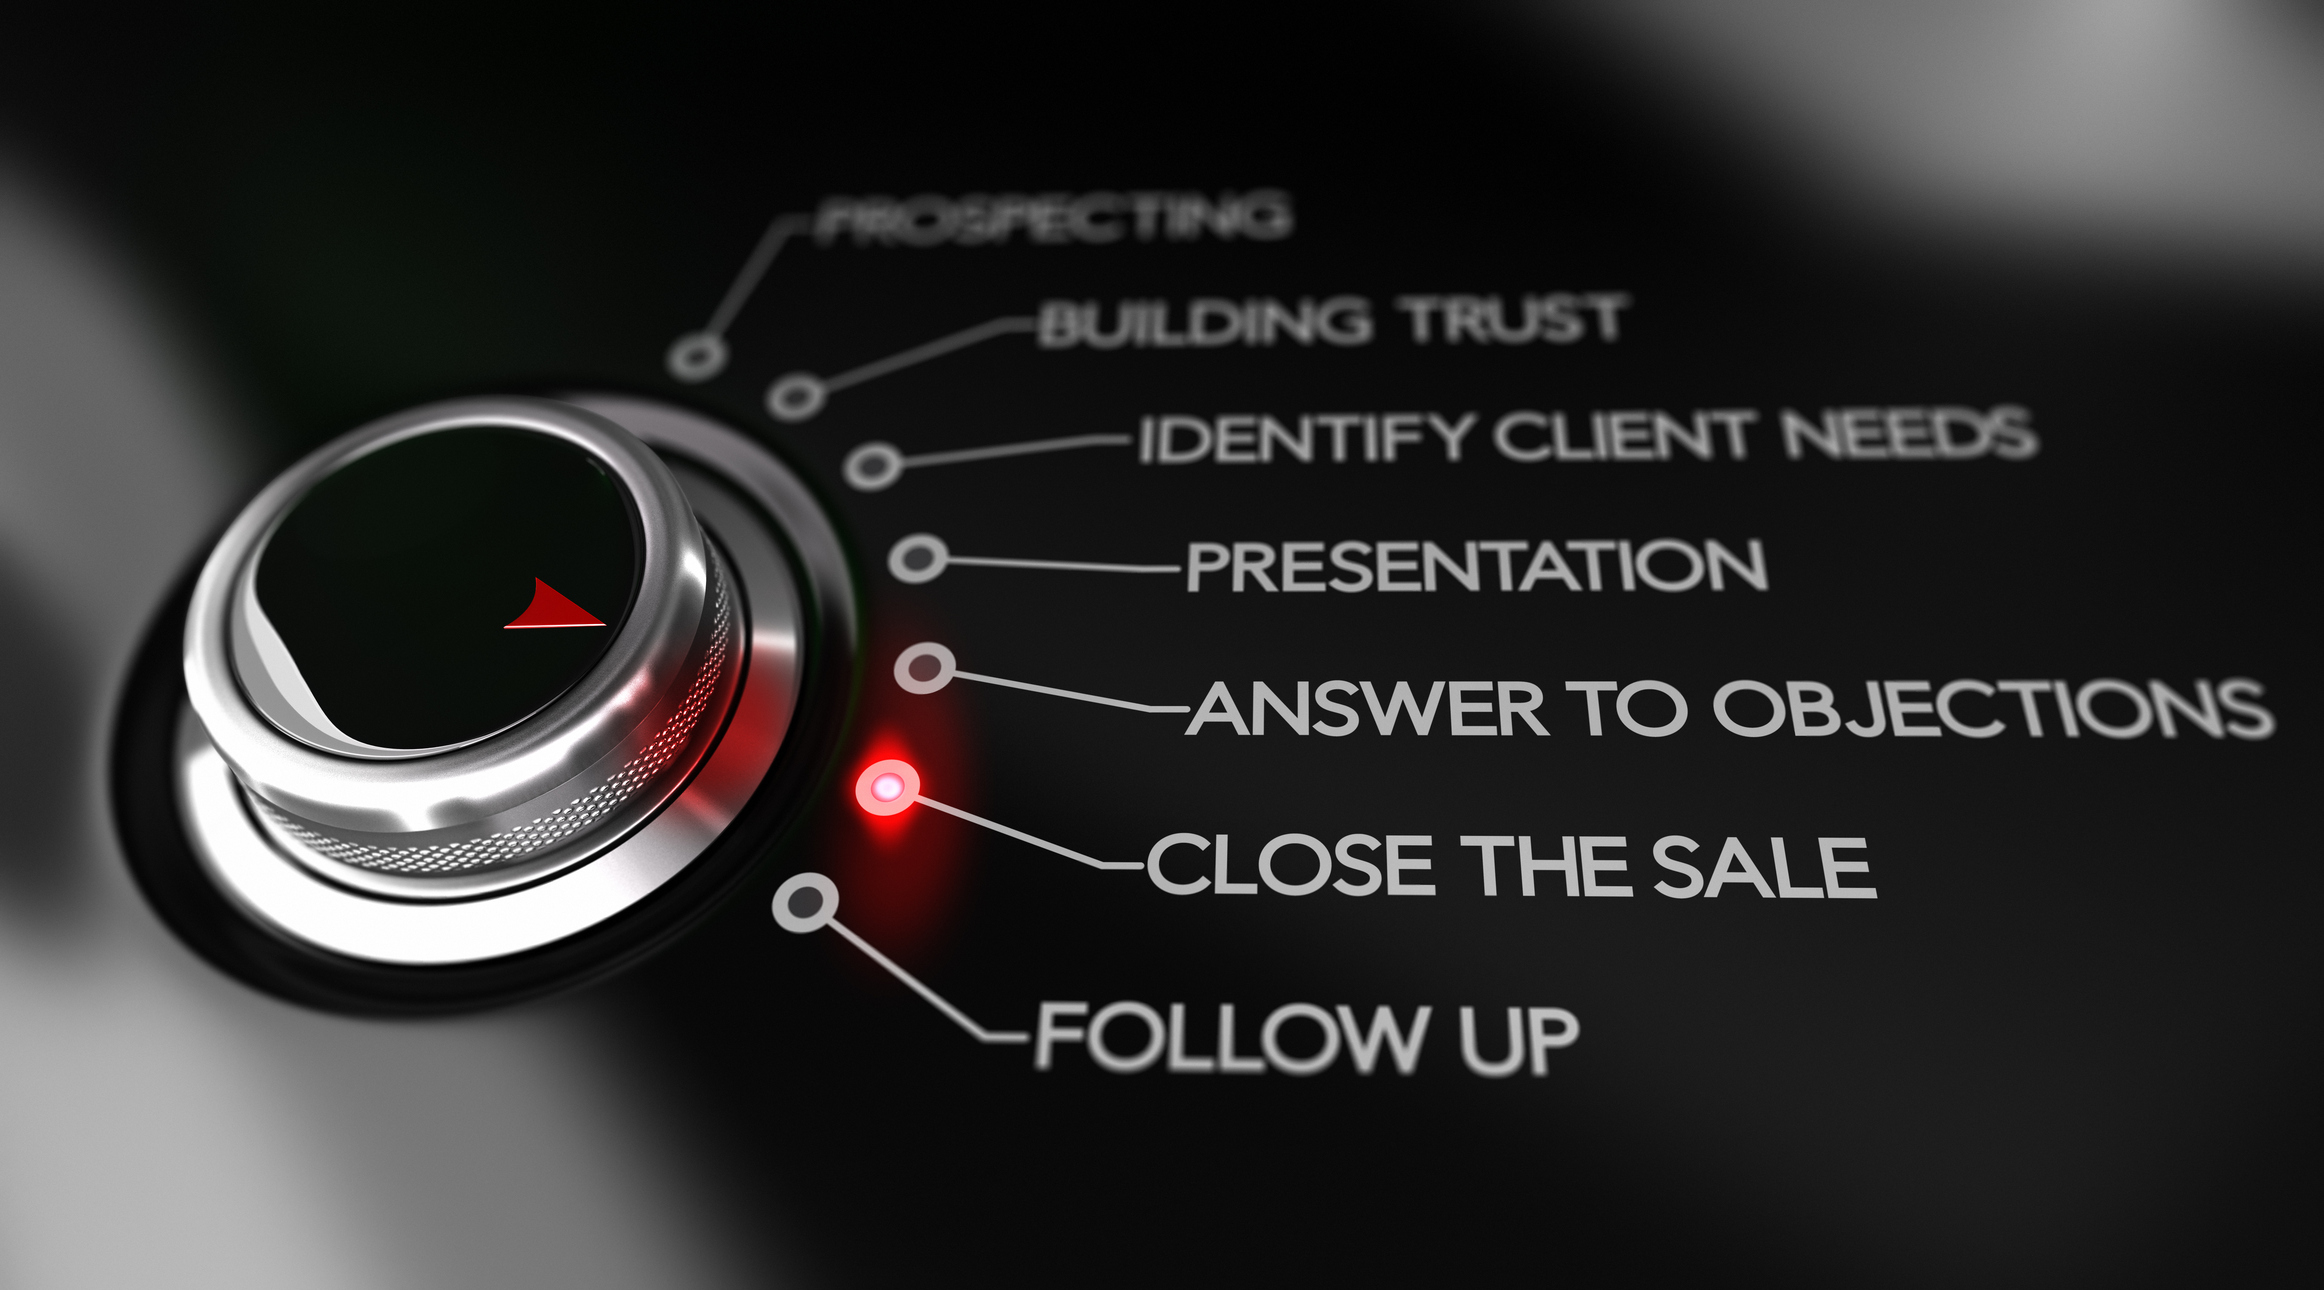 019 – Sales Skills 101: How to Go From Zero to Hero in the Art of Persuasion